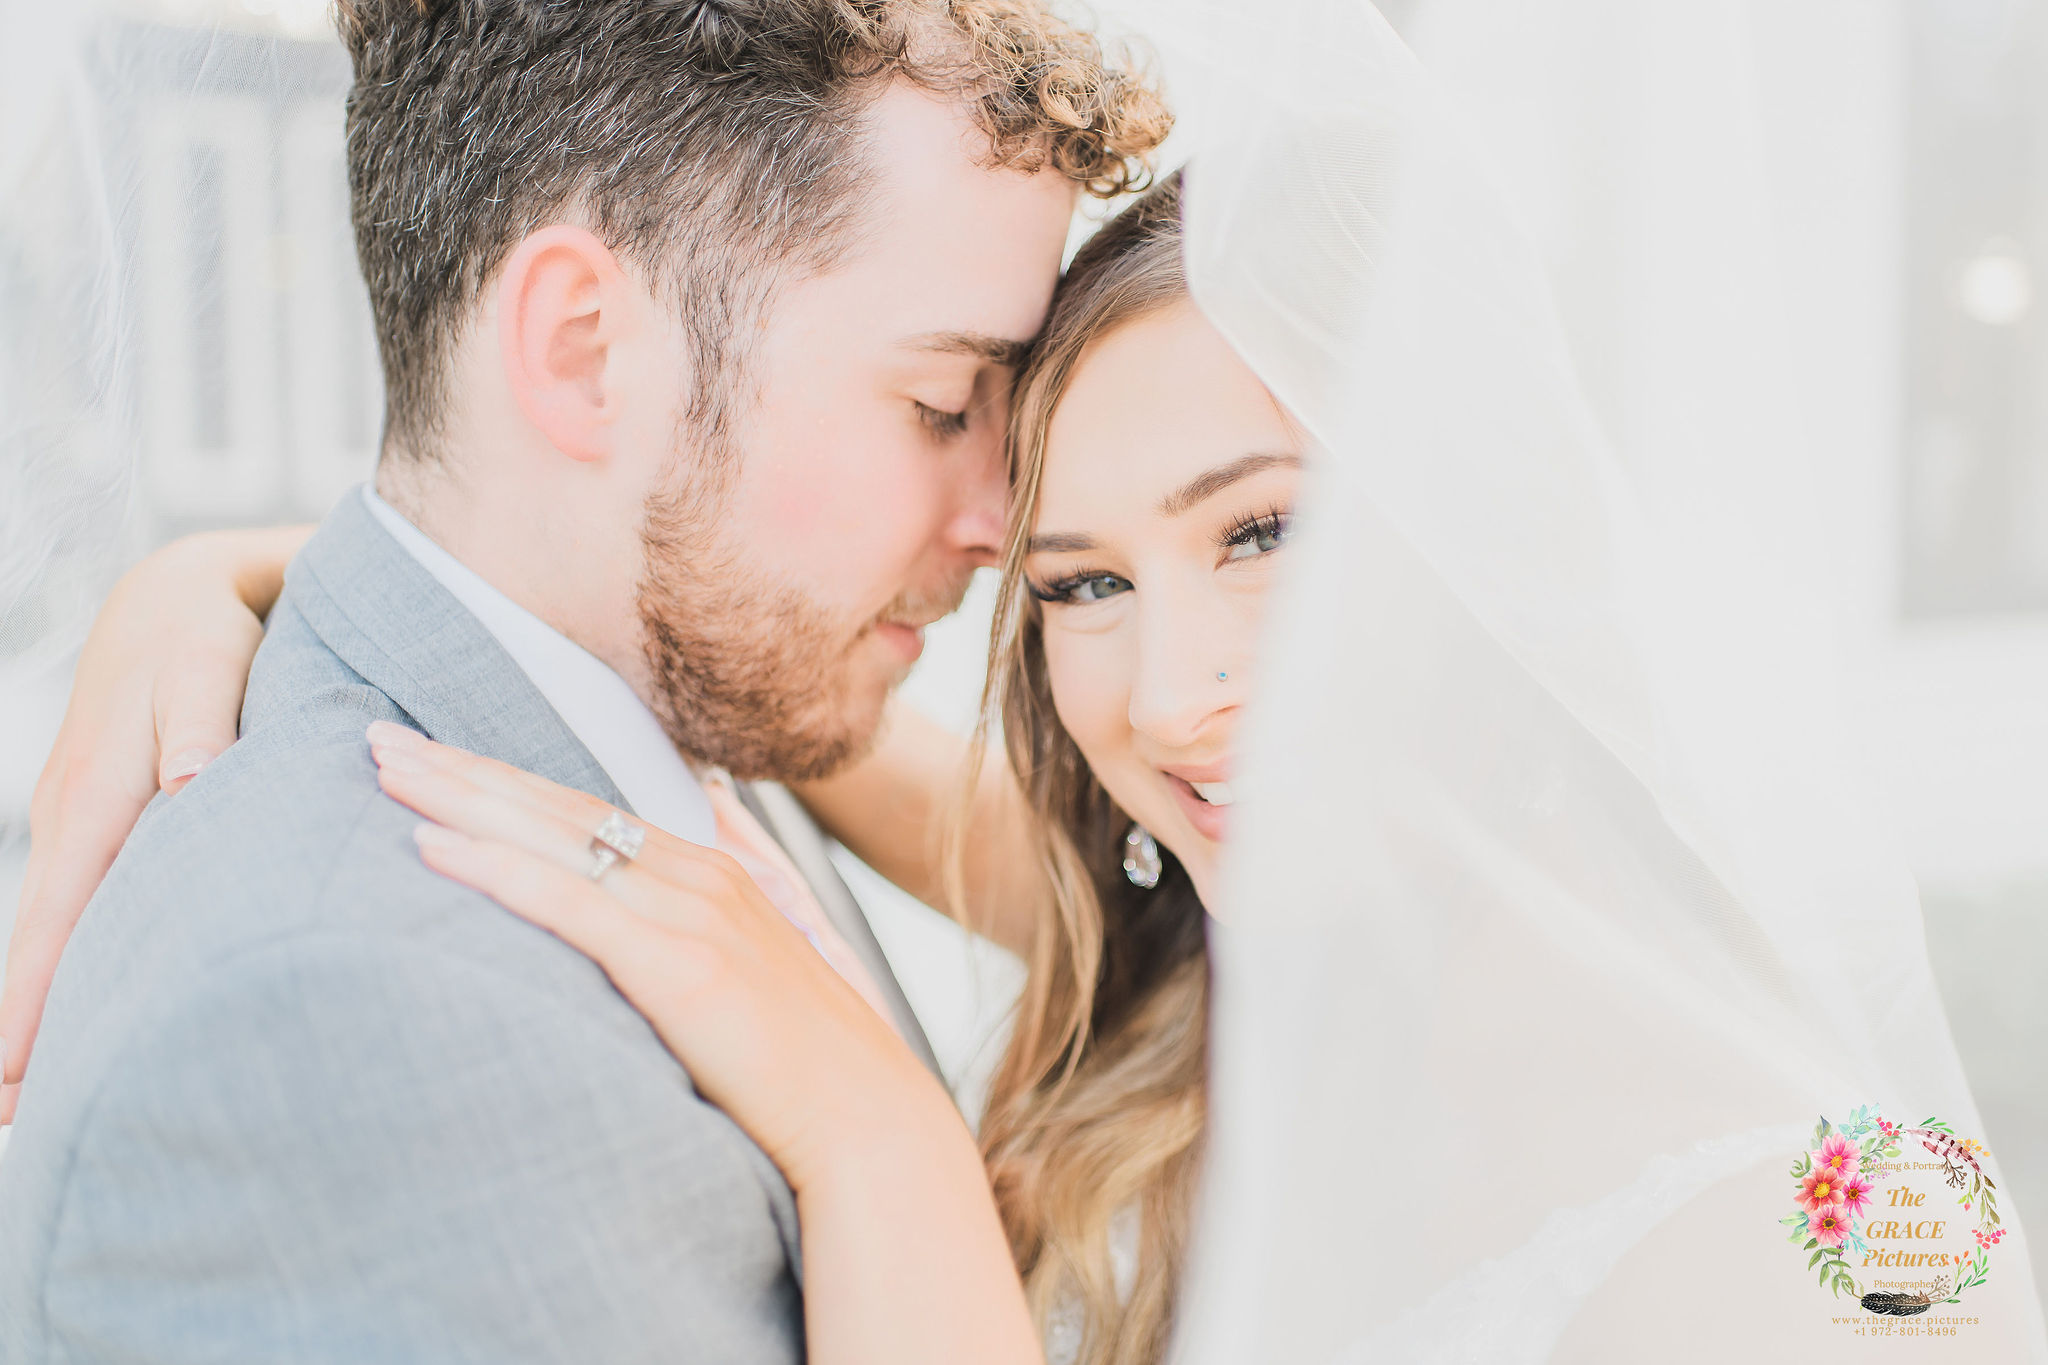 Company logo of The GRACE Pictures / Dallas Wedding photographer